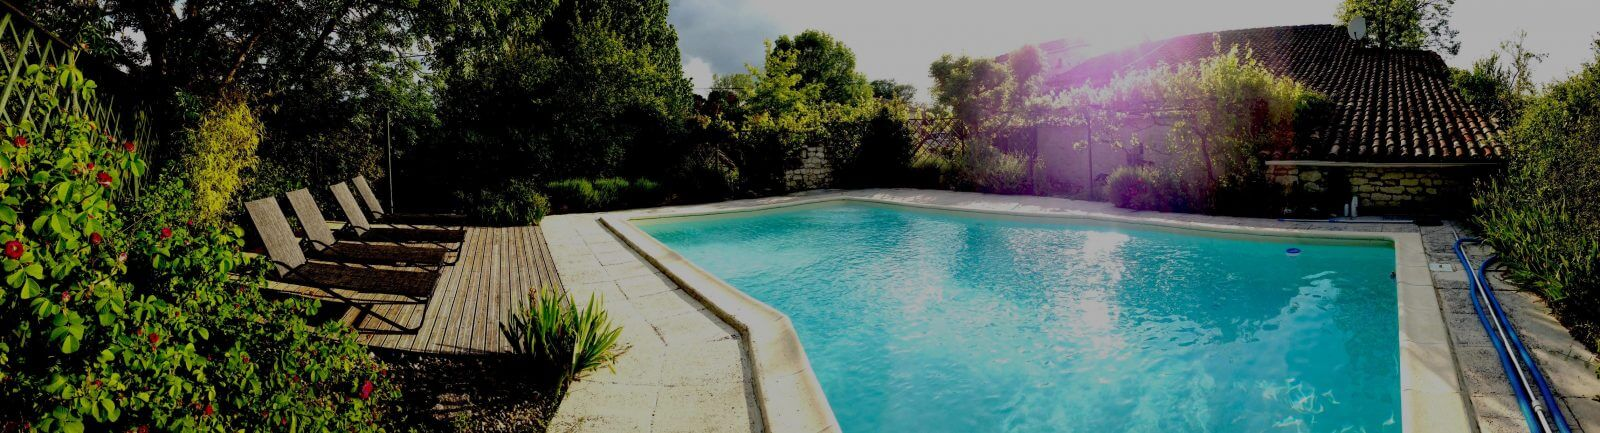 Secluded pool area at Bijou Barn